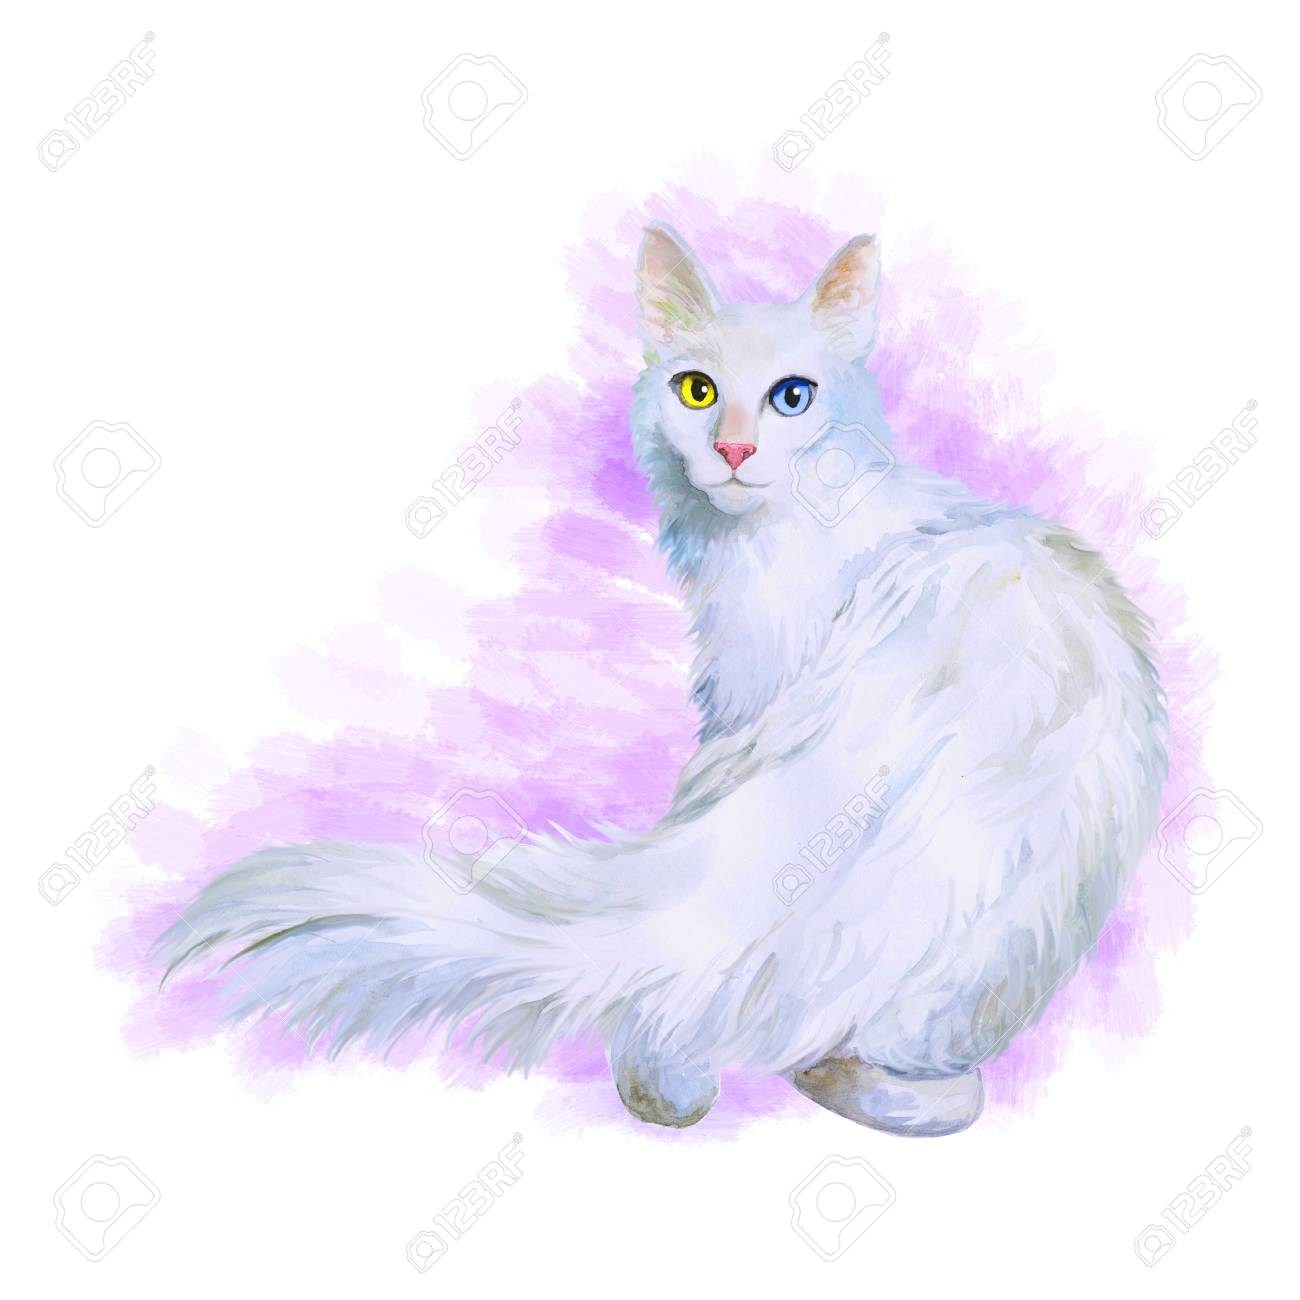 Watercolor Portrait Of Turkish Angora Cat With Odd Eyes Isolated